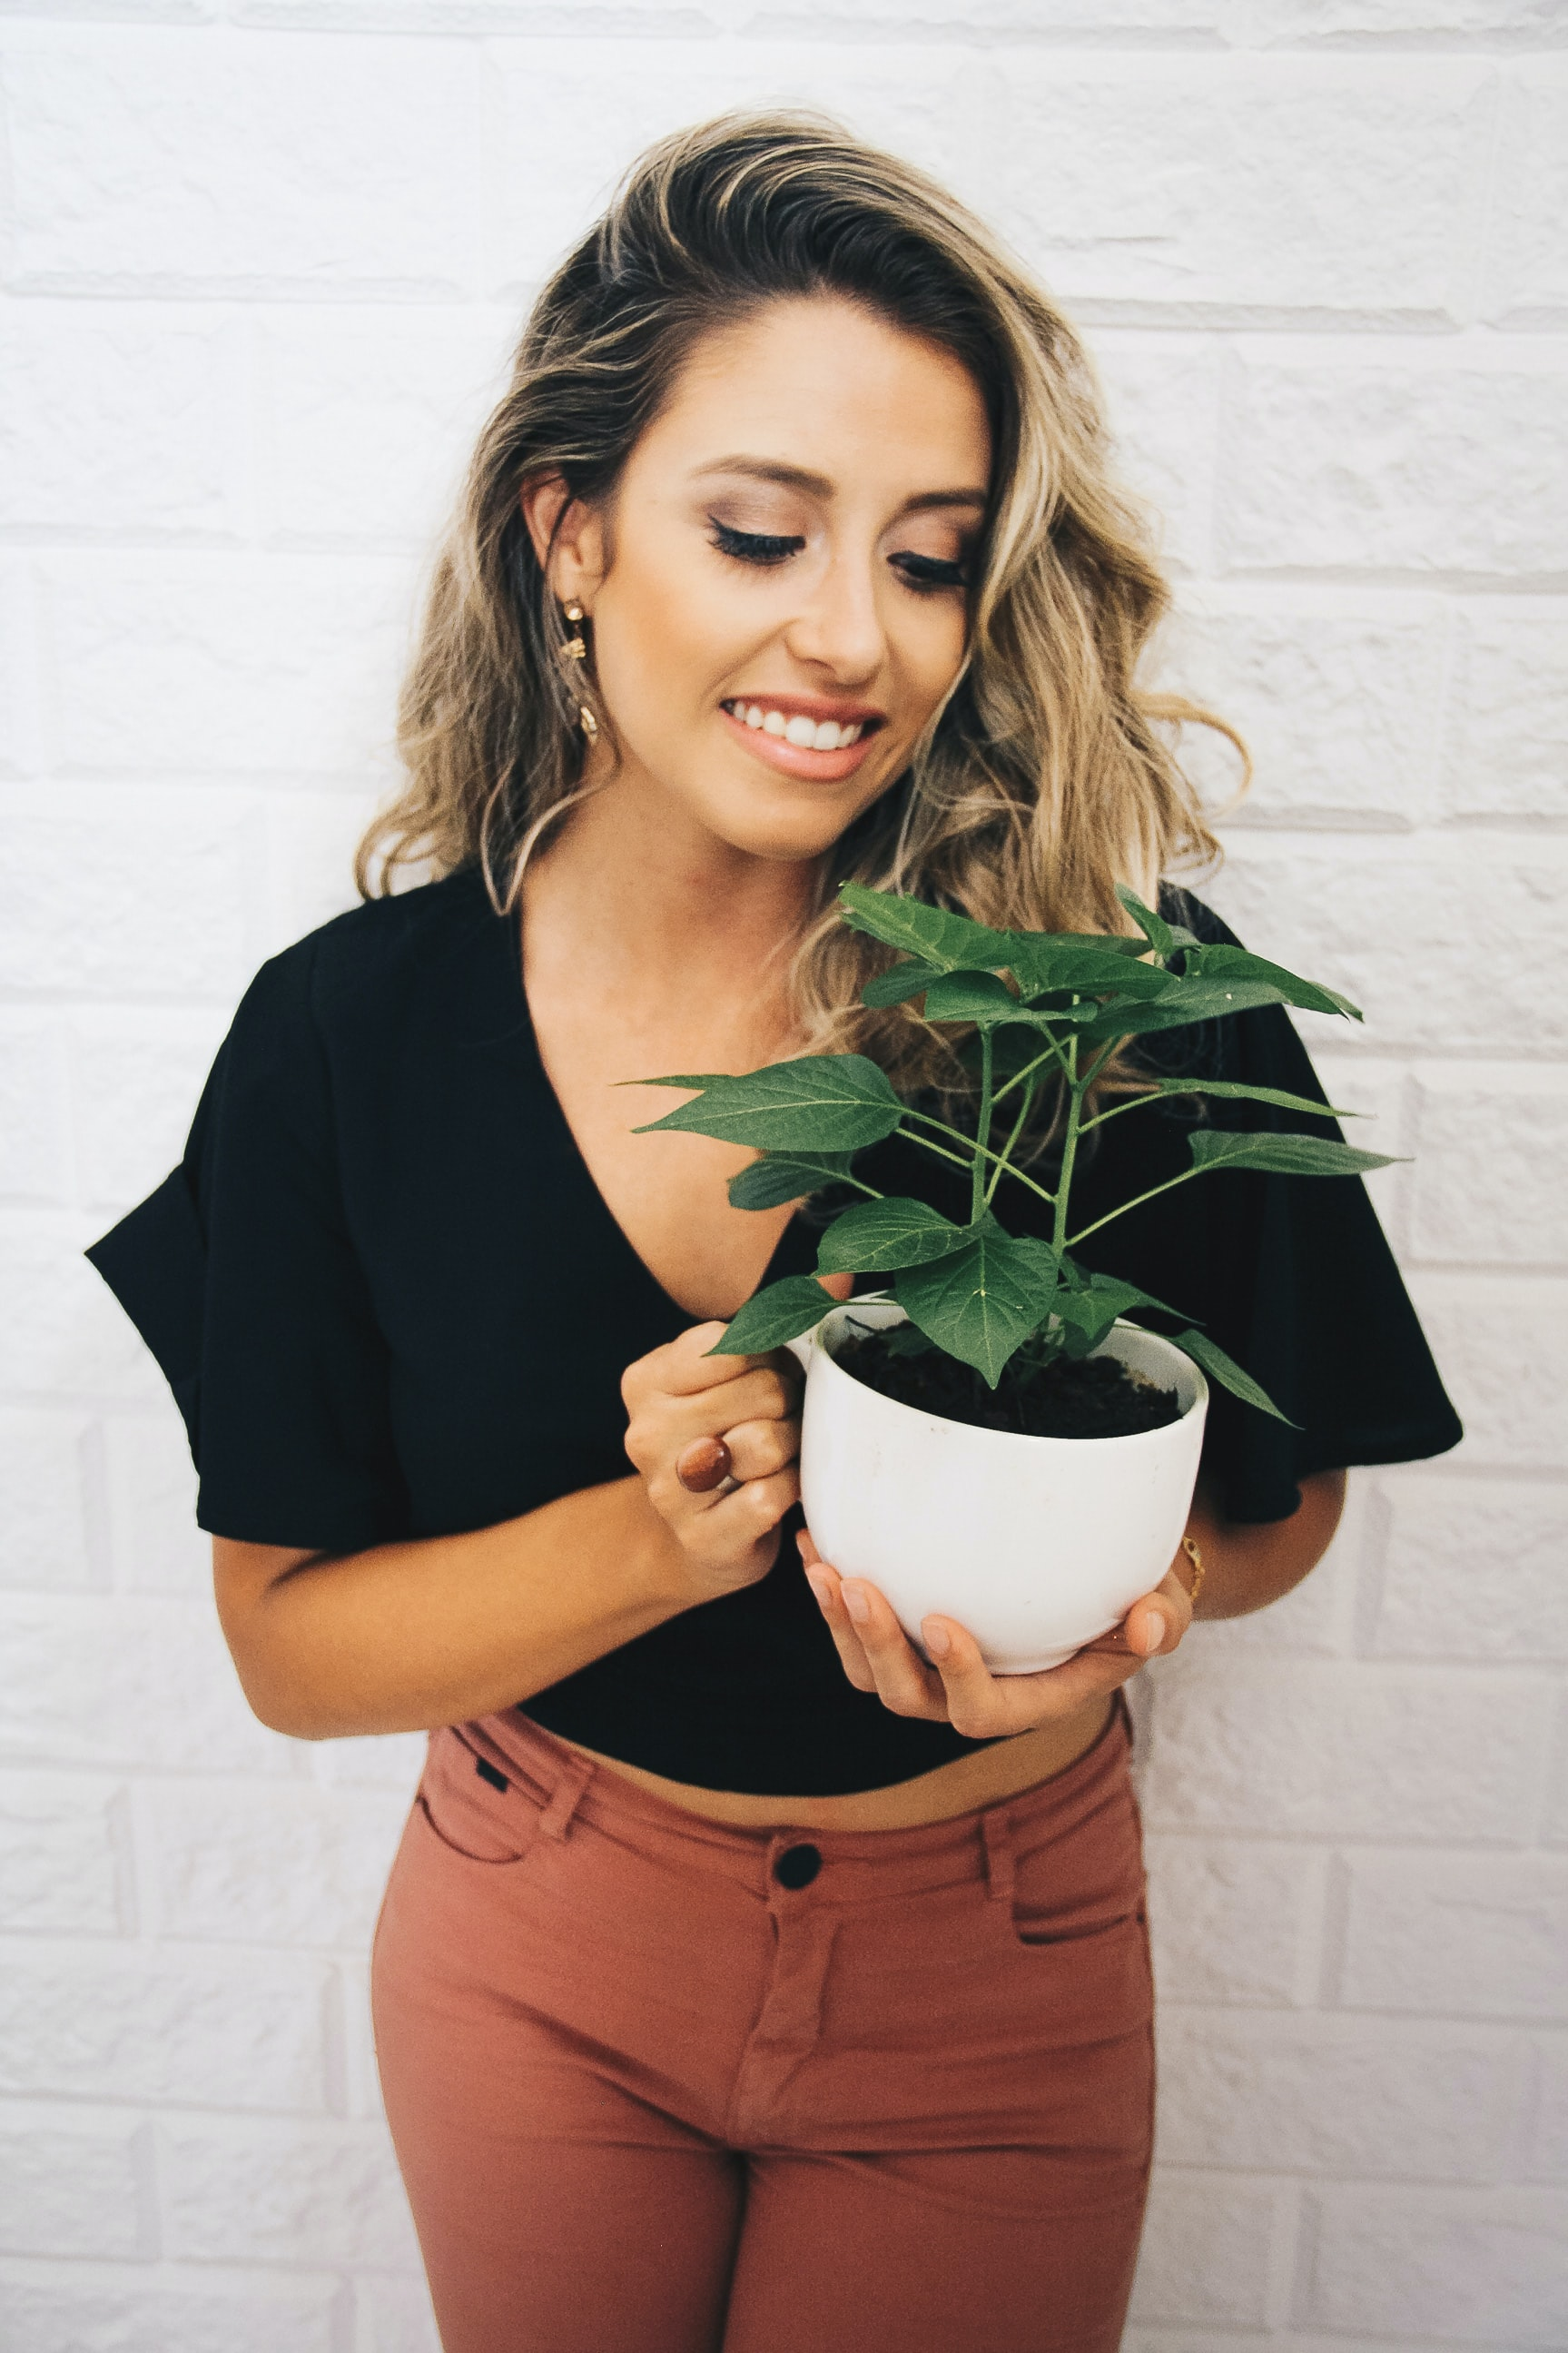 woman smiling while holding potted plant